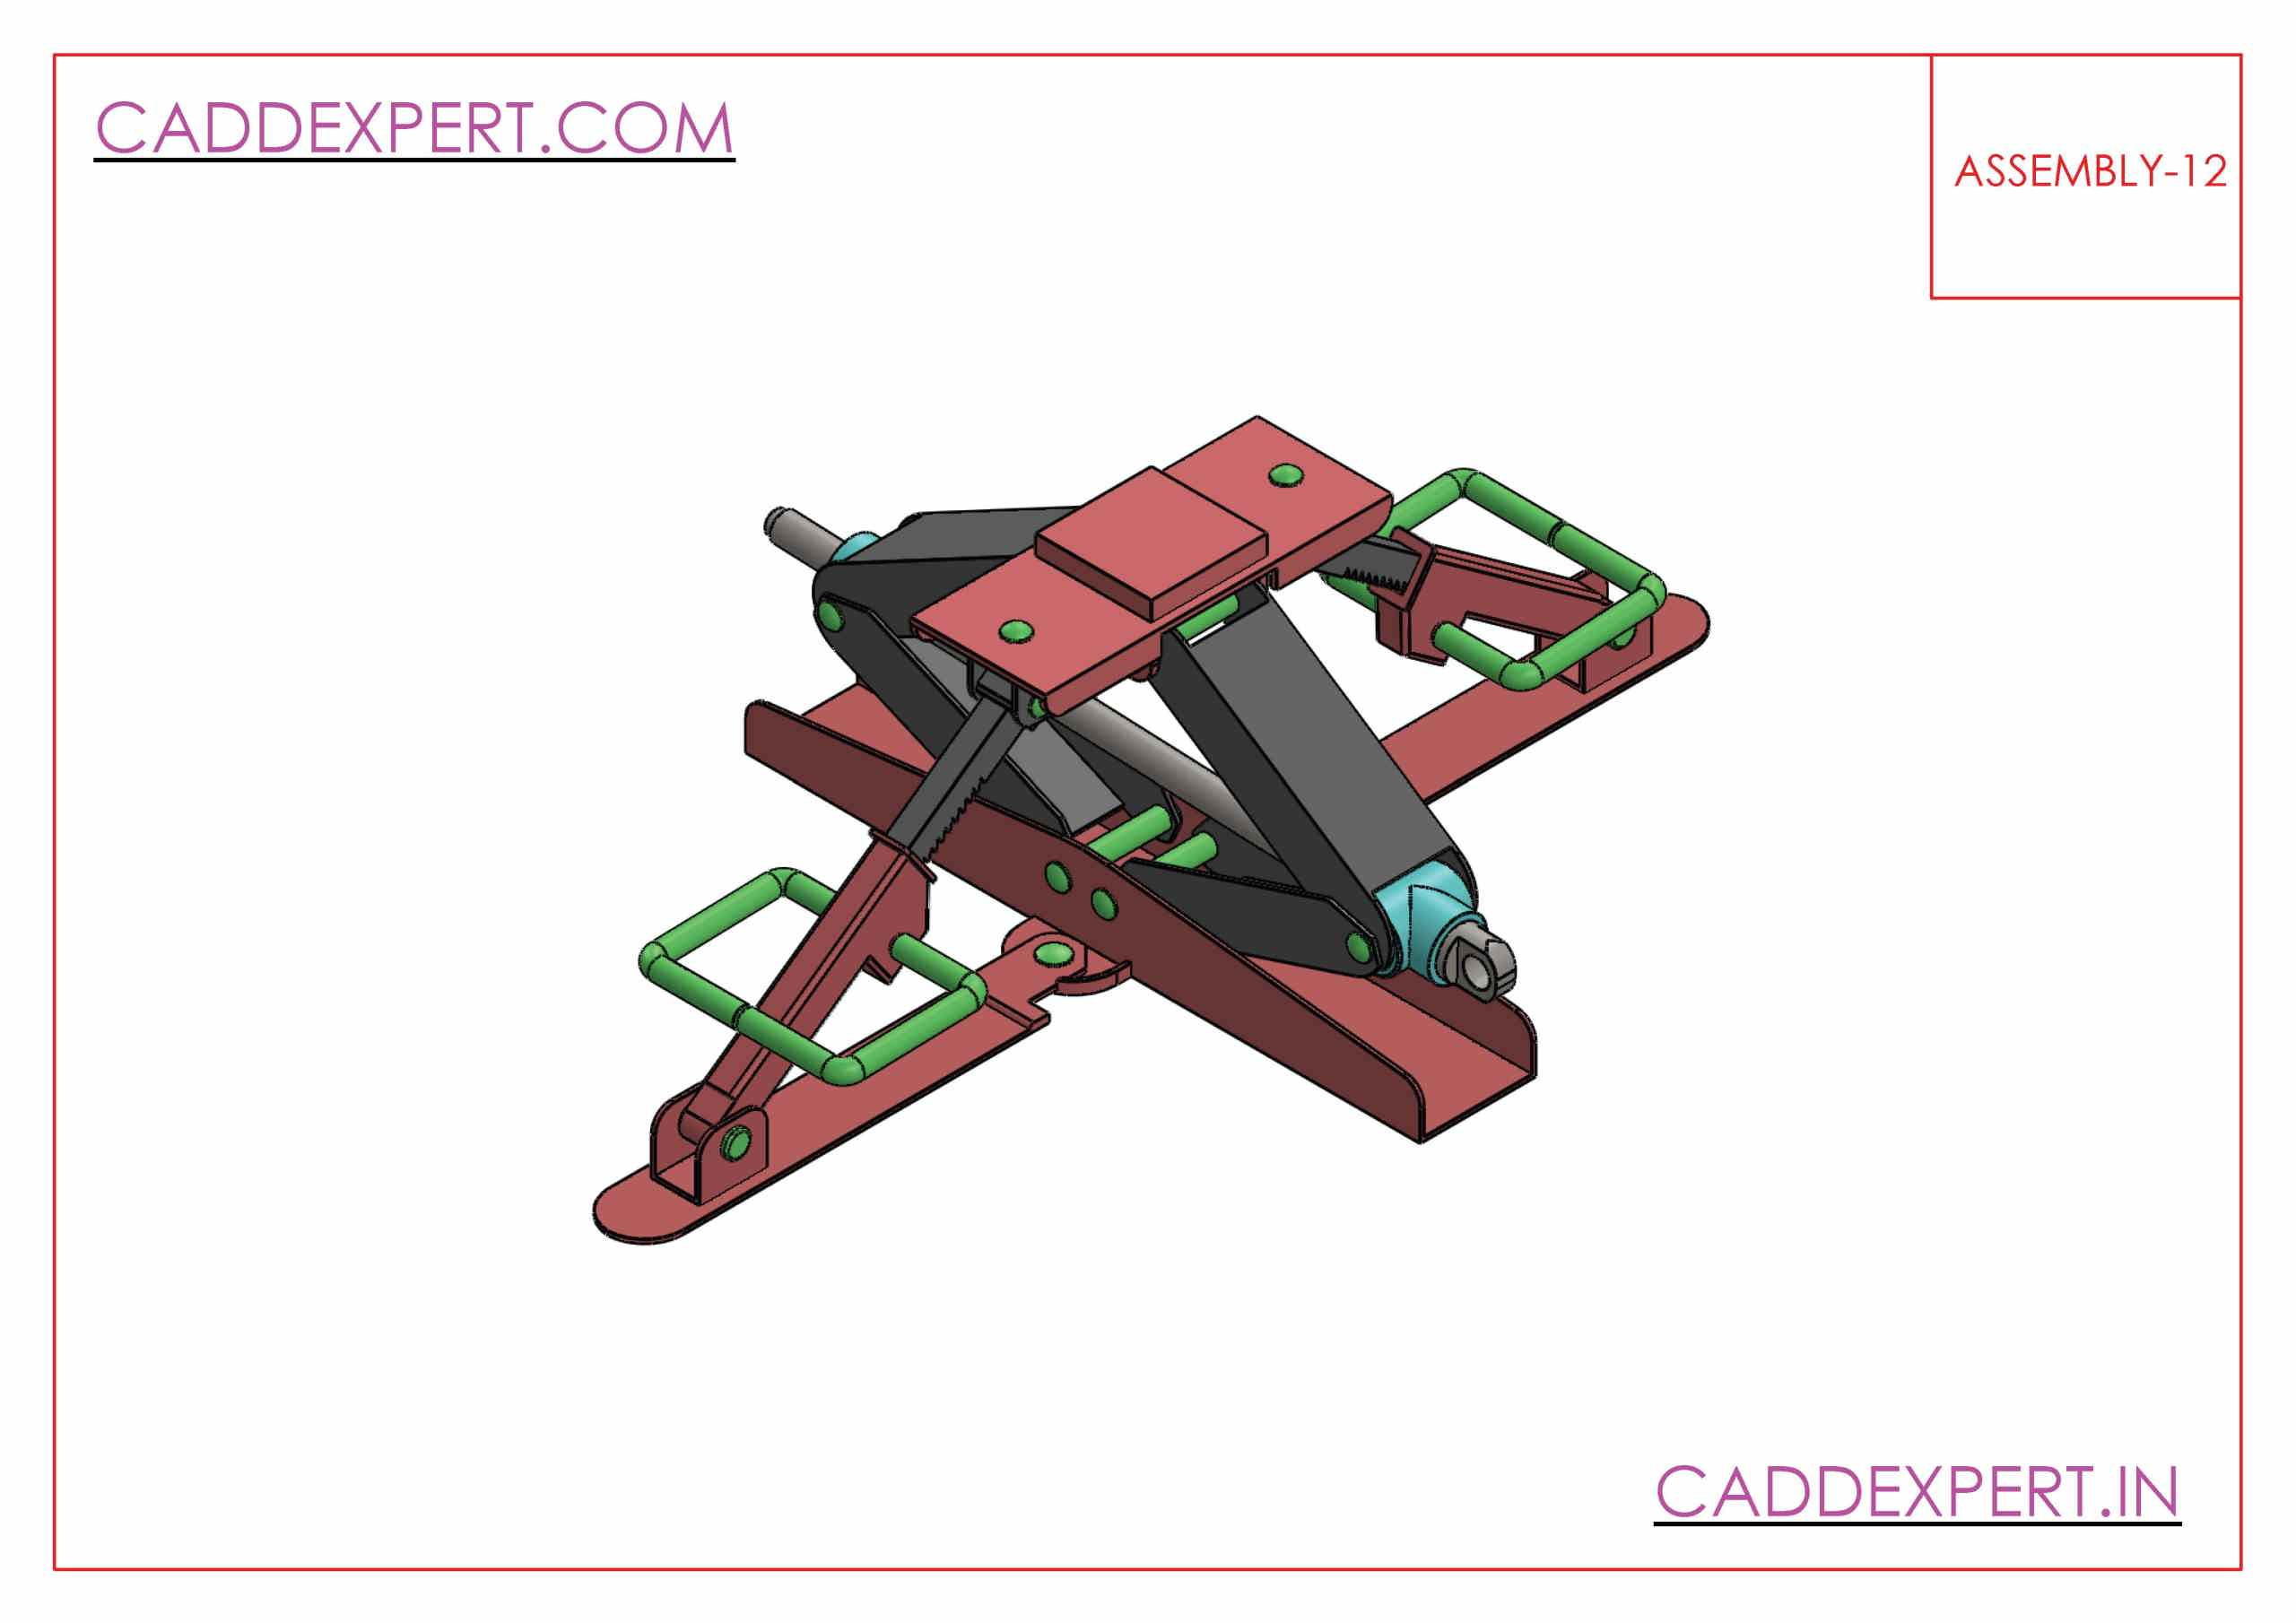 SOLIDWORKS ASSEMBLY JACK SCREW ISOMETRIC VIEW